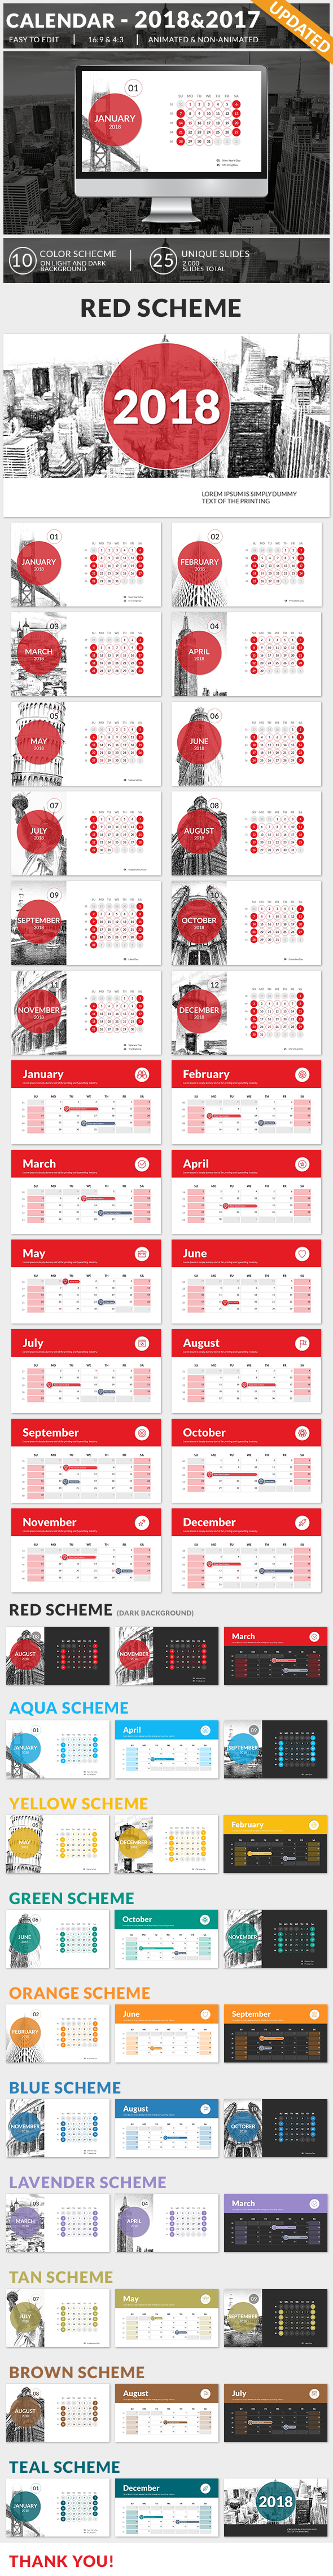 Calendar And PowerPoint Presentation Template By SanaNik - Unique calander templates scheme